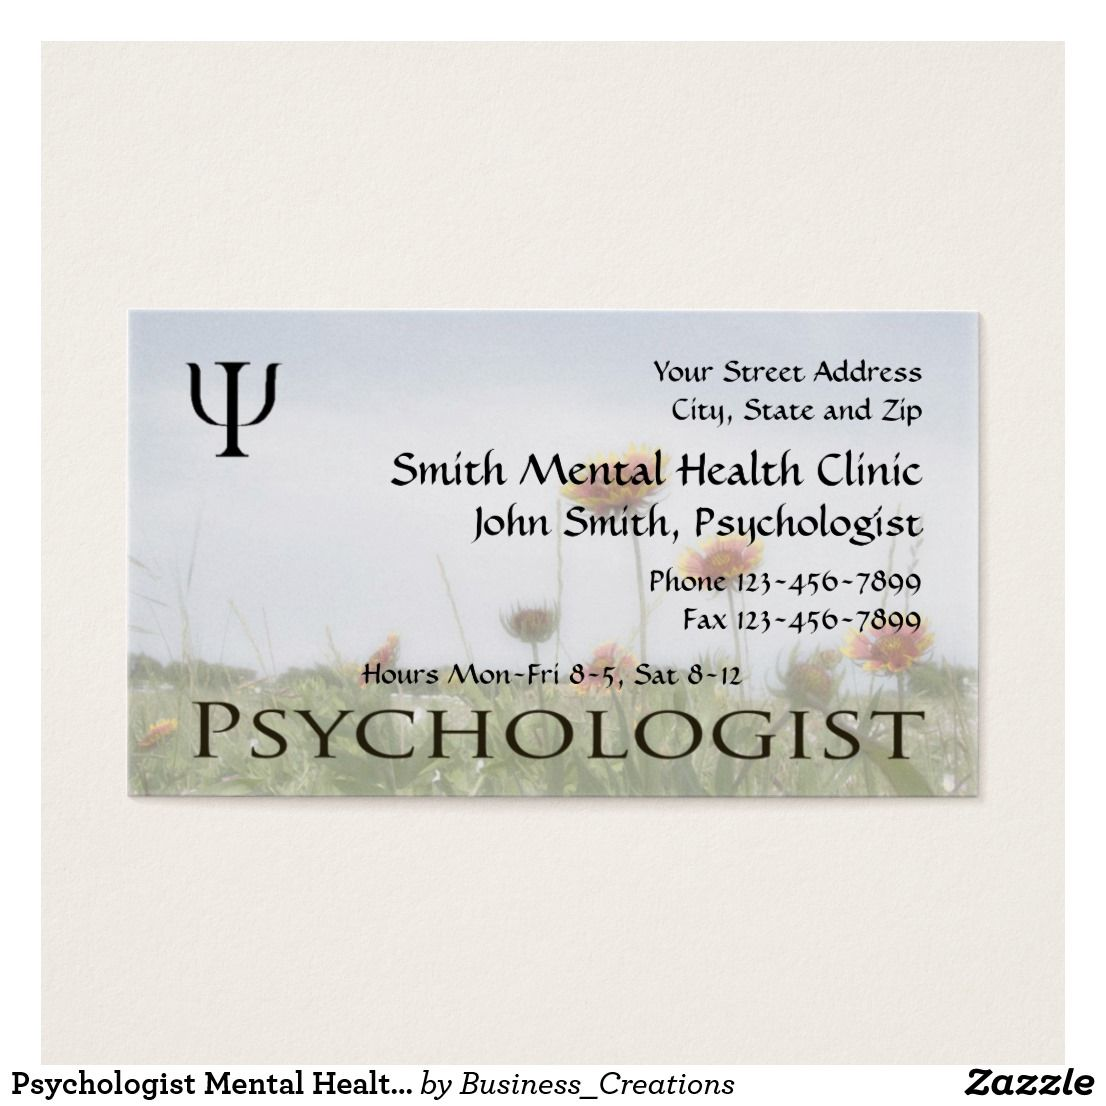 Psychologist mental health business card business cards and business psychologist mental health business card custom check out more business card designs at http colourmoves